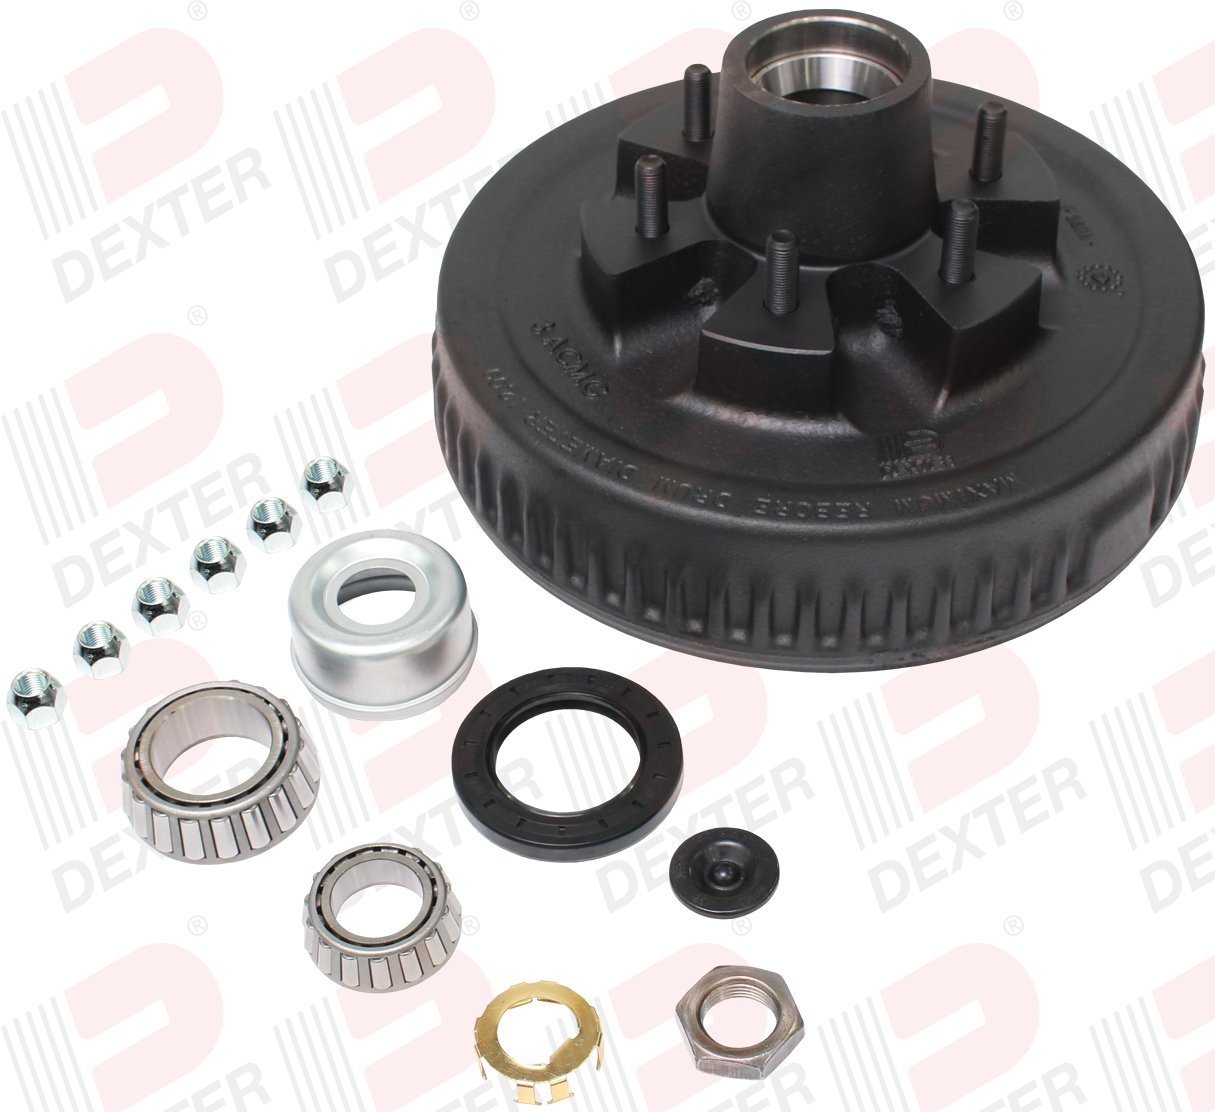 2.25 Seal Dexter K08-201-9B HUB/&Drum KIT for 5.2K-6K AXLES 1//2 Studs EZ-LUBE 6-5.50 BC